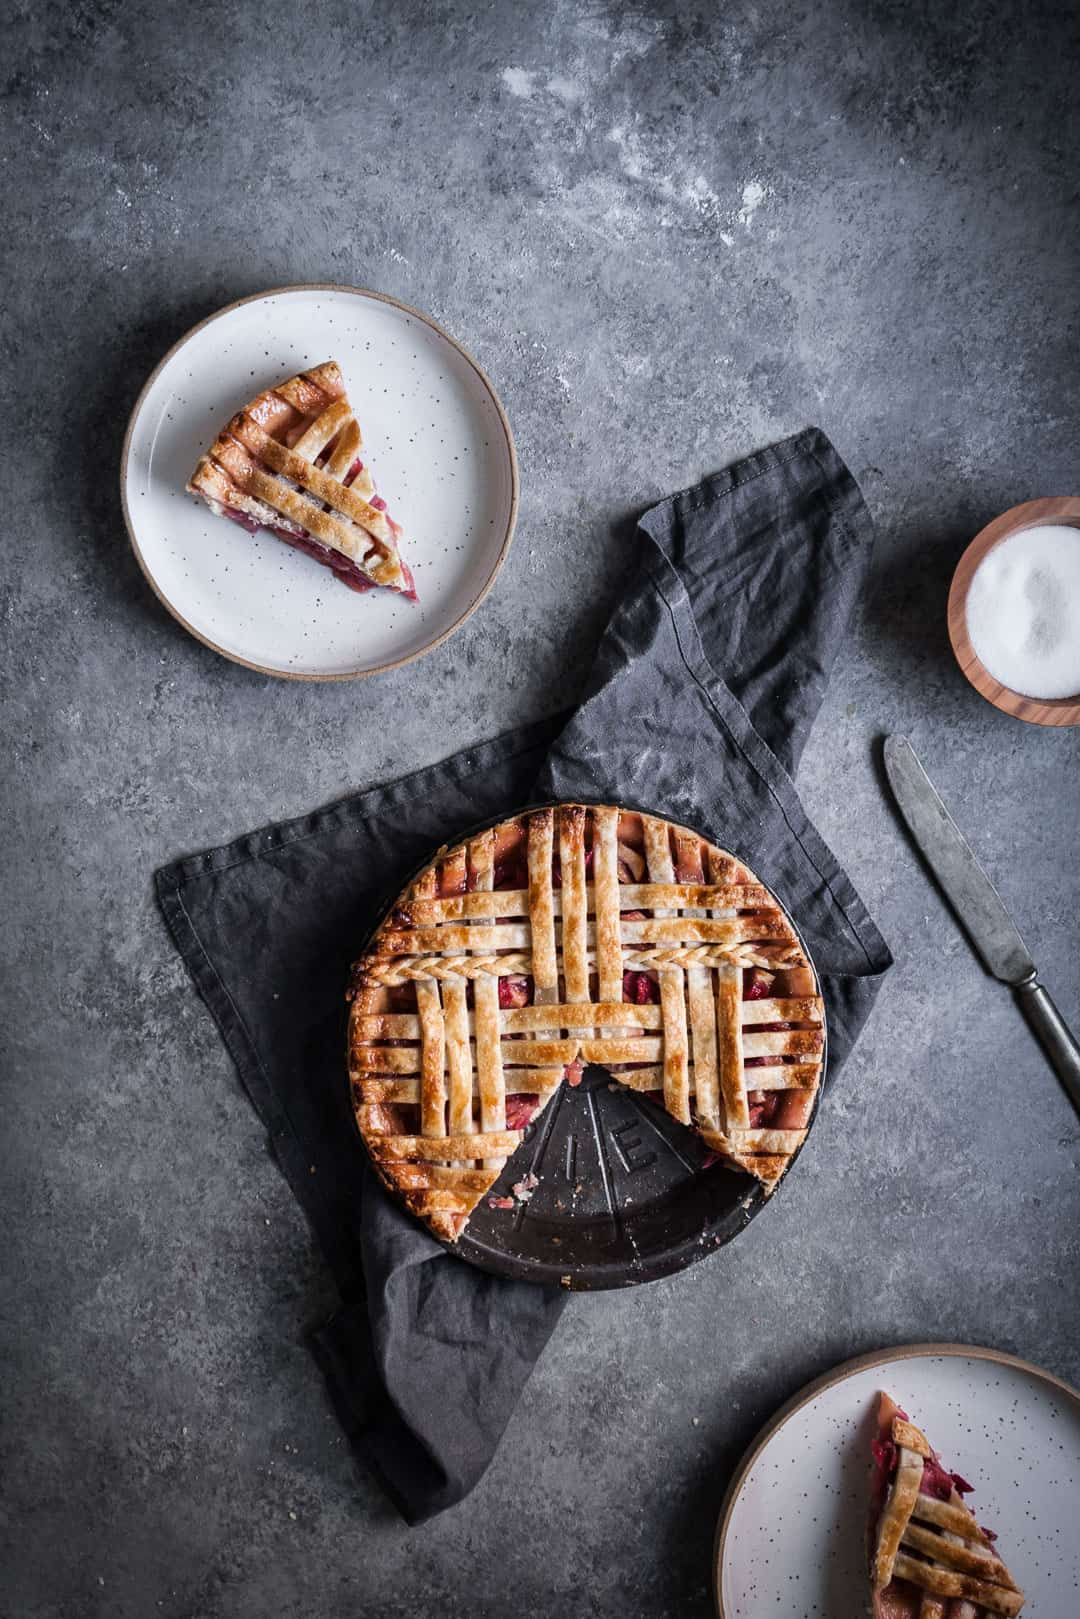 top view of baked rhubarb apple pie with ginger and lemongrass with two pieces cut out and placed on plates nearby, with a grey linen towel under the pie tin